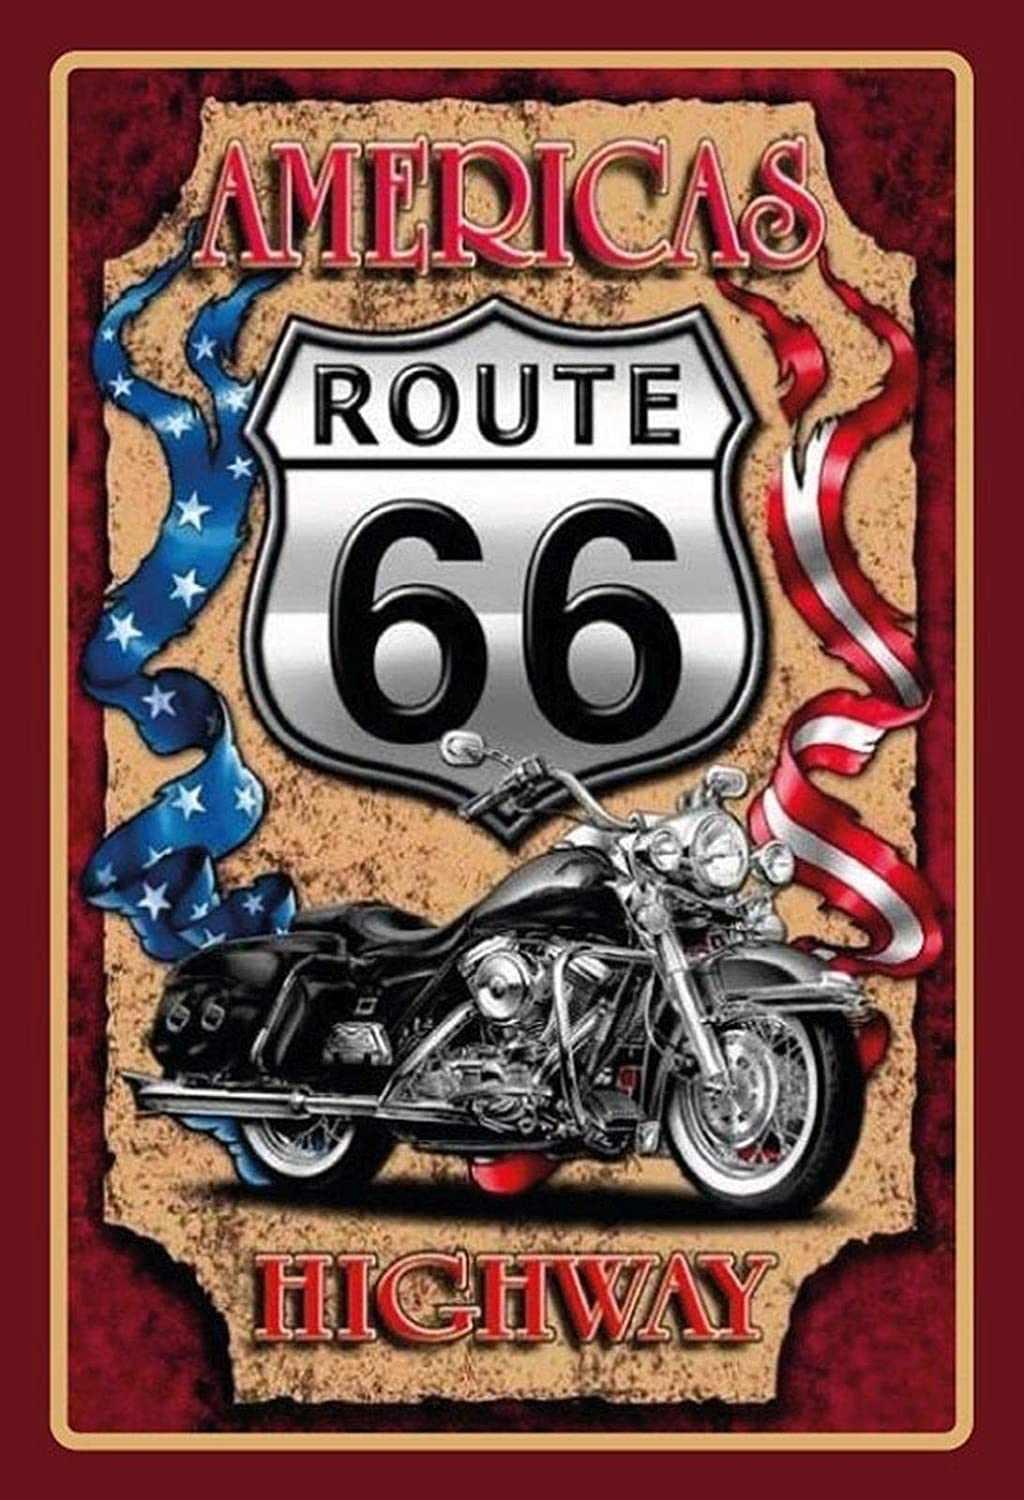 Metal Sign Domed 20 x 30 cm FS Retro Route 66 Americas Highway Motorcycle